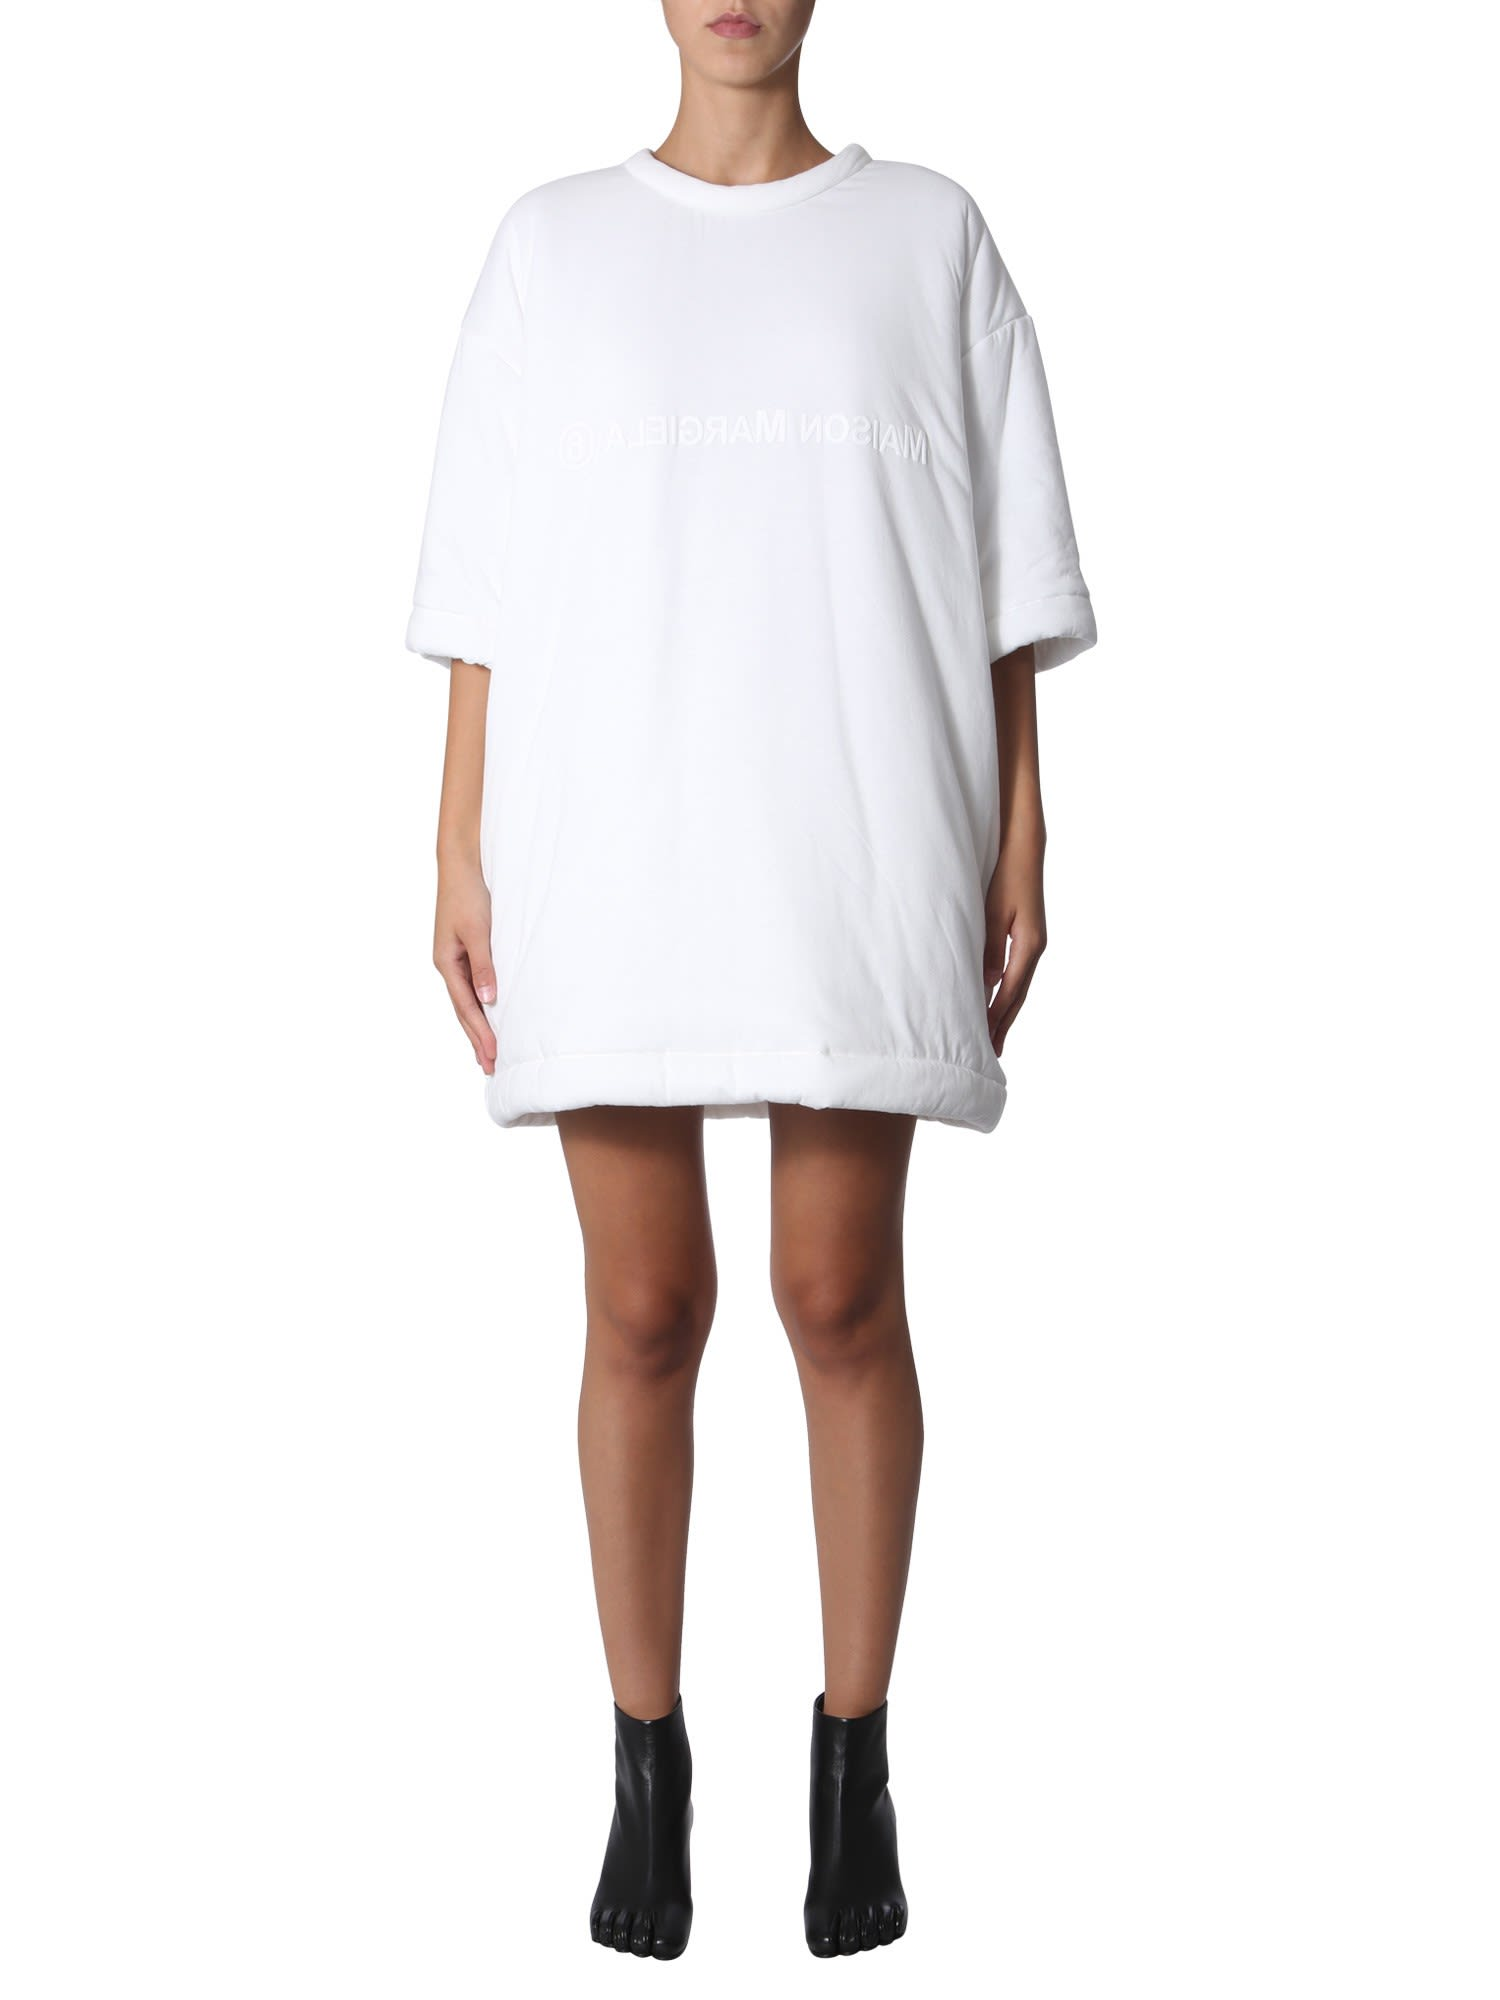 MM6 Maison Margiela Padded Dress